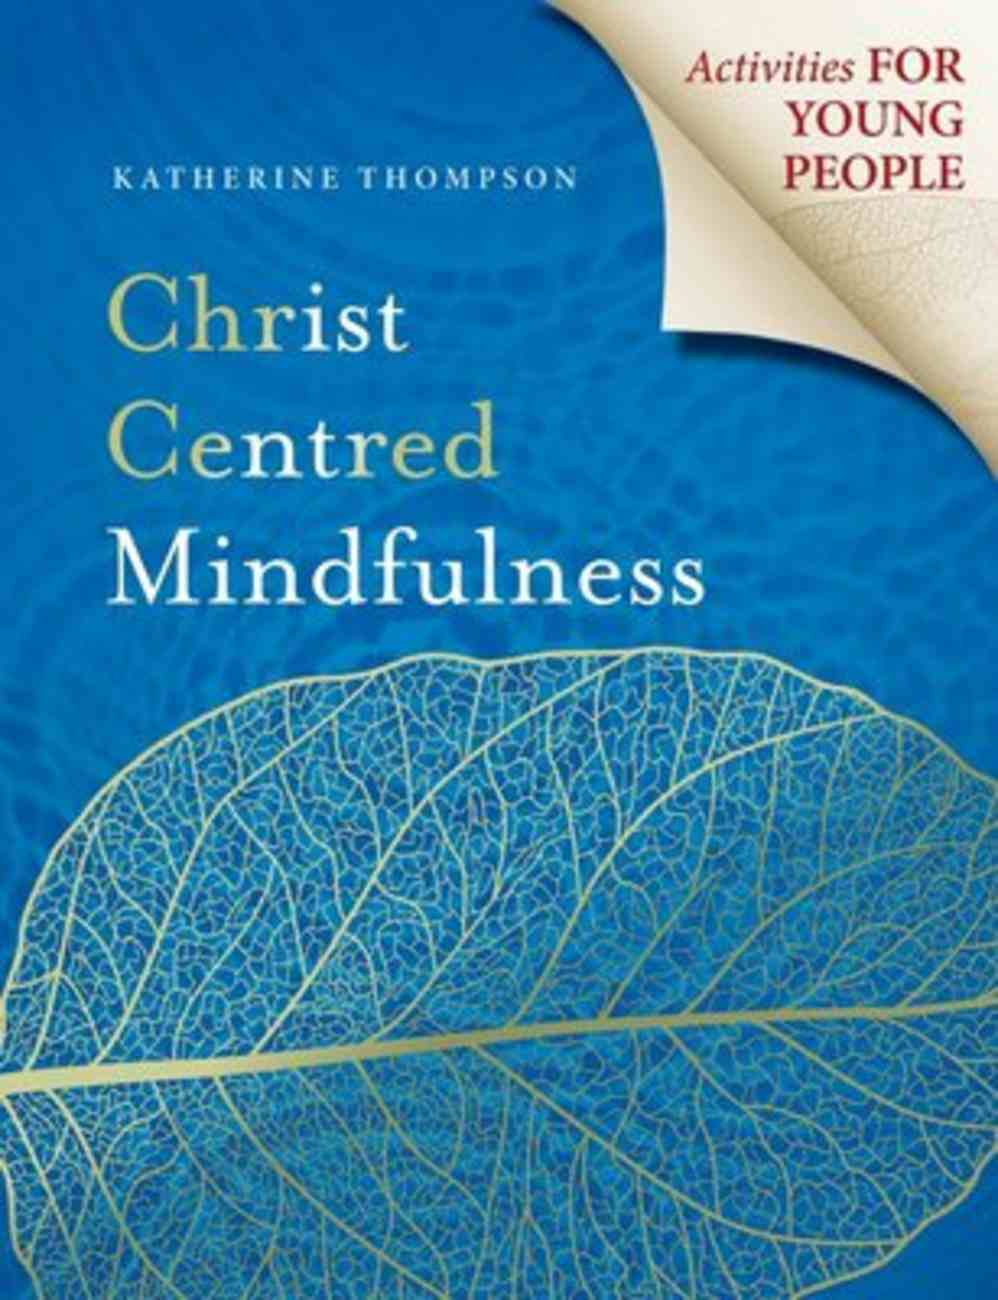 Christ Centred Mindfulness: Activities For Young People Paperback